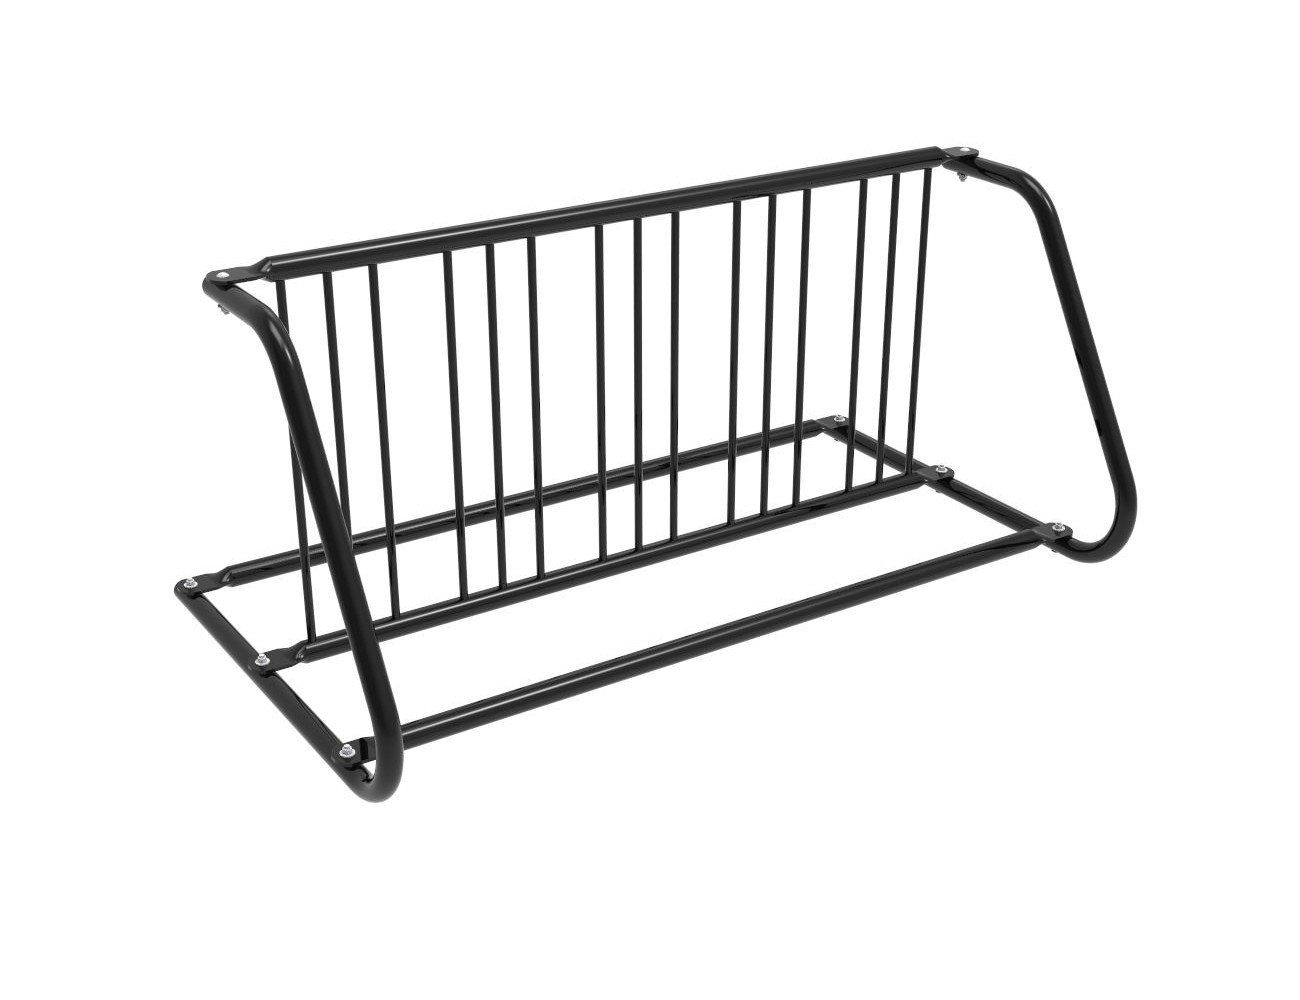 10-Bike Double-Sided Grid Bike Rack